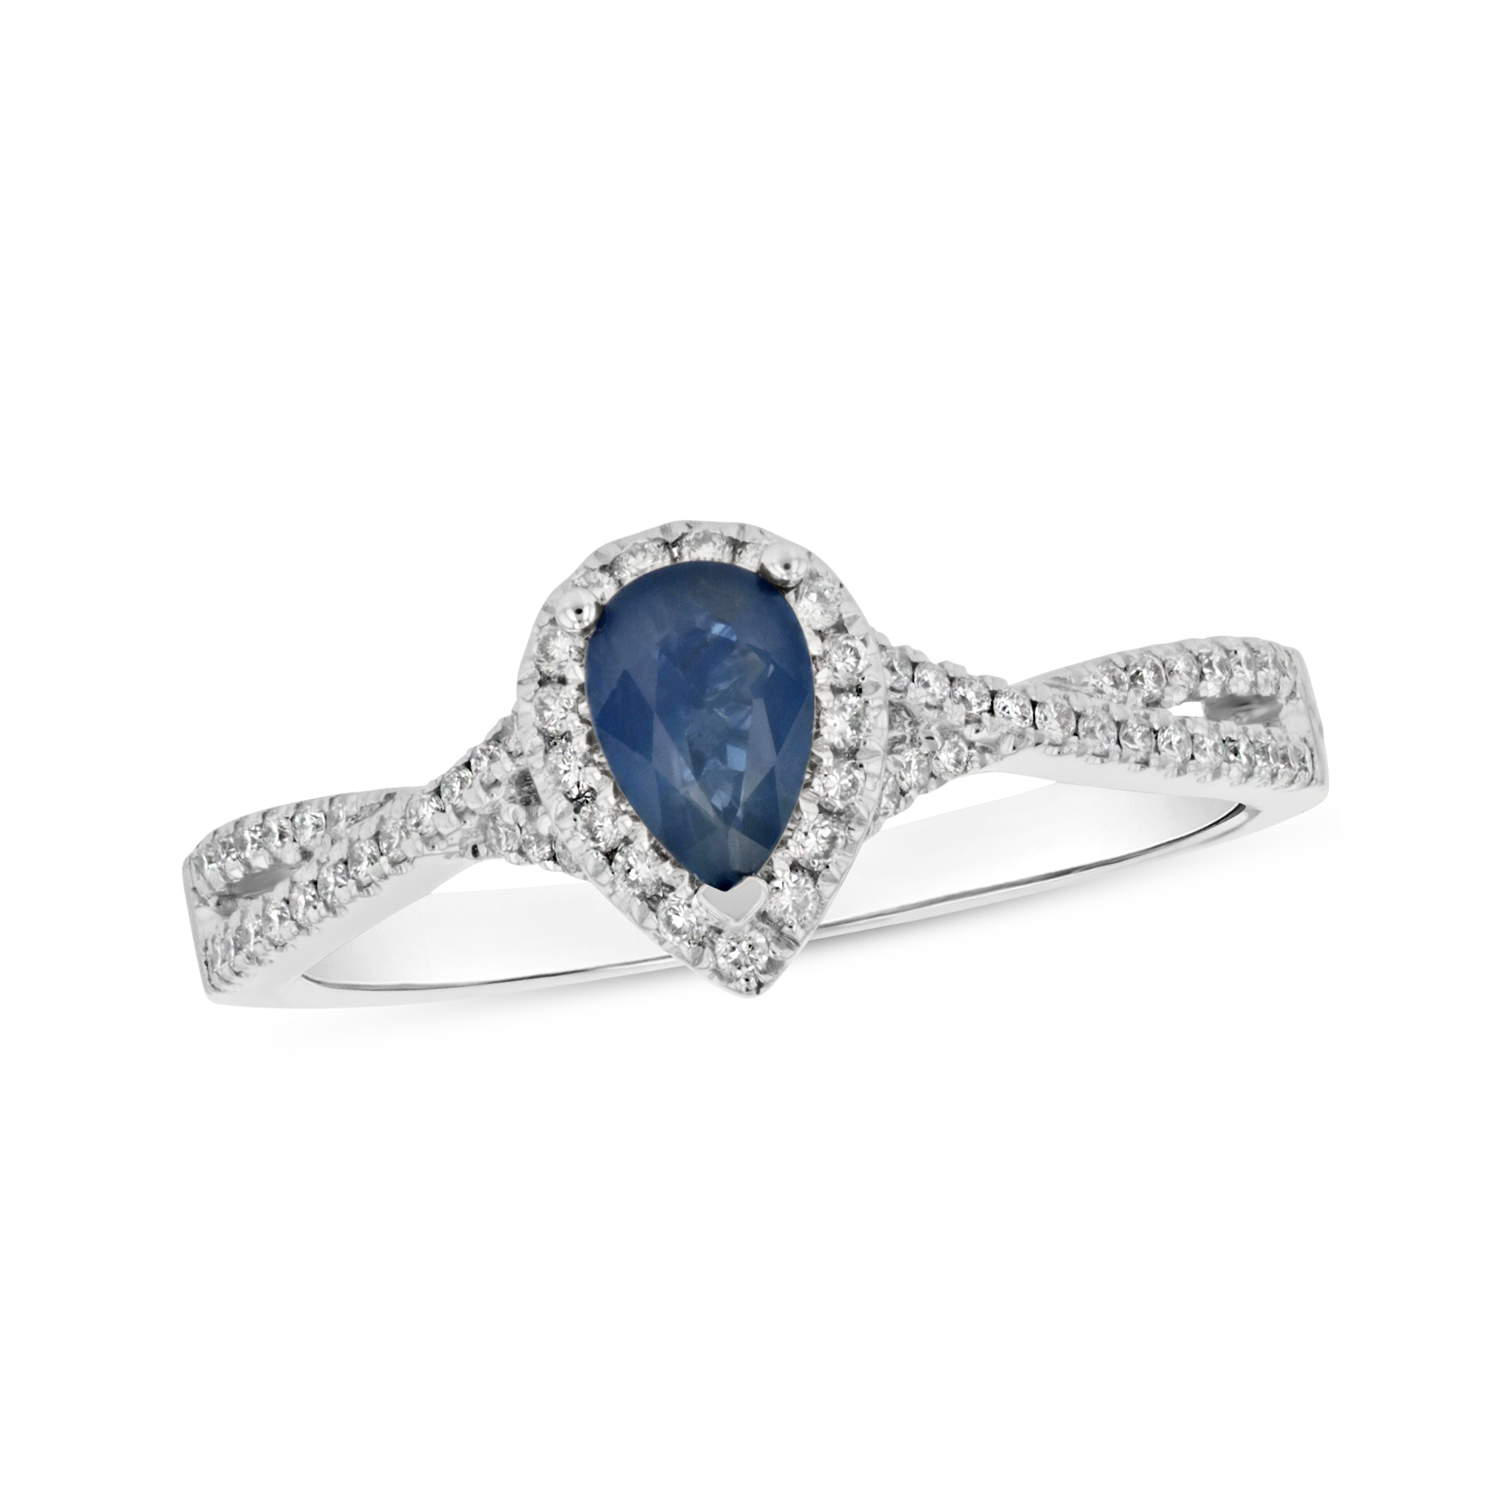 View 0.77ctw Diamnd and Pear Shaped Sapphire Ring in 18k White Gold